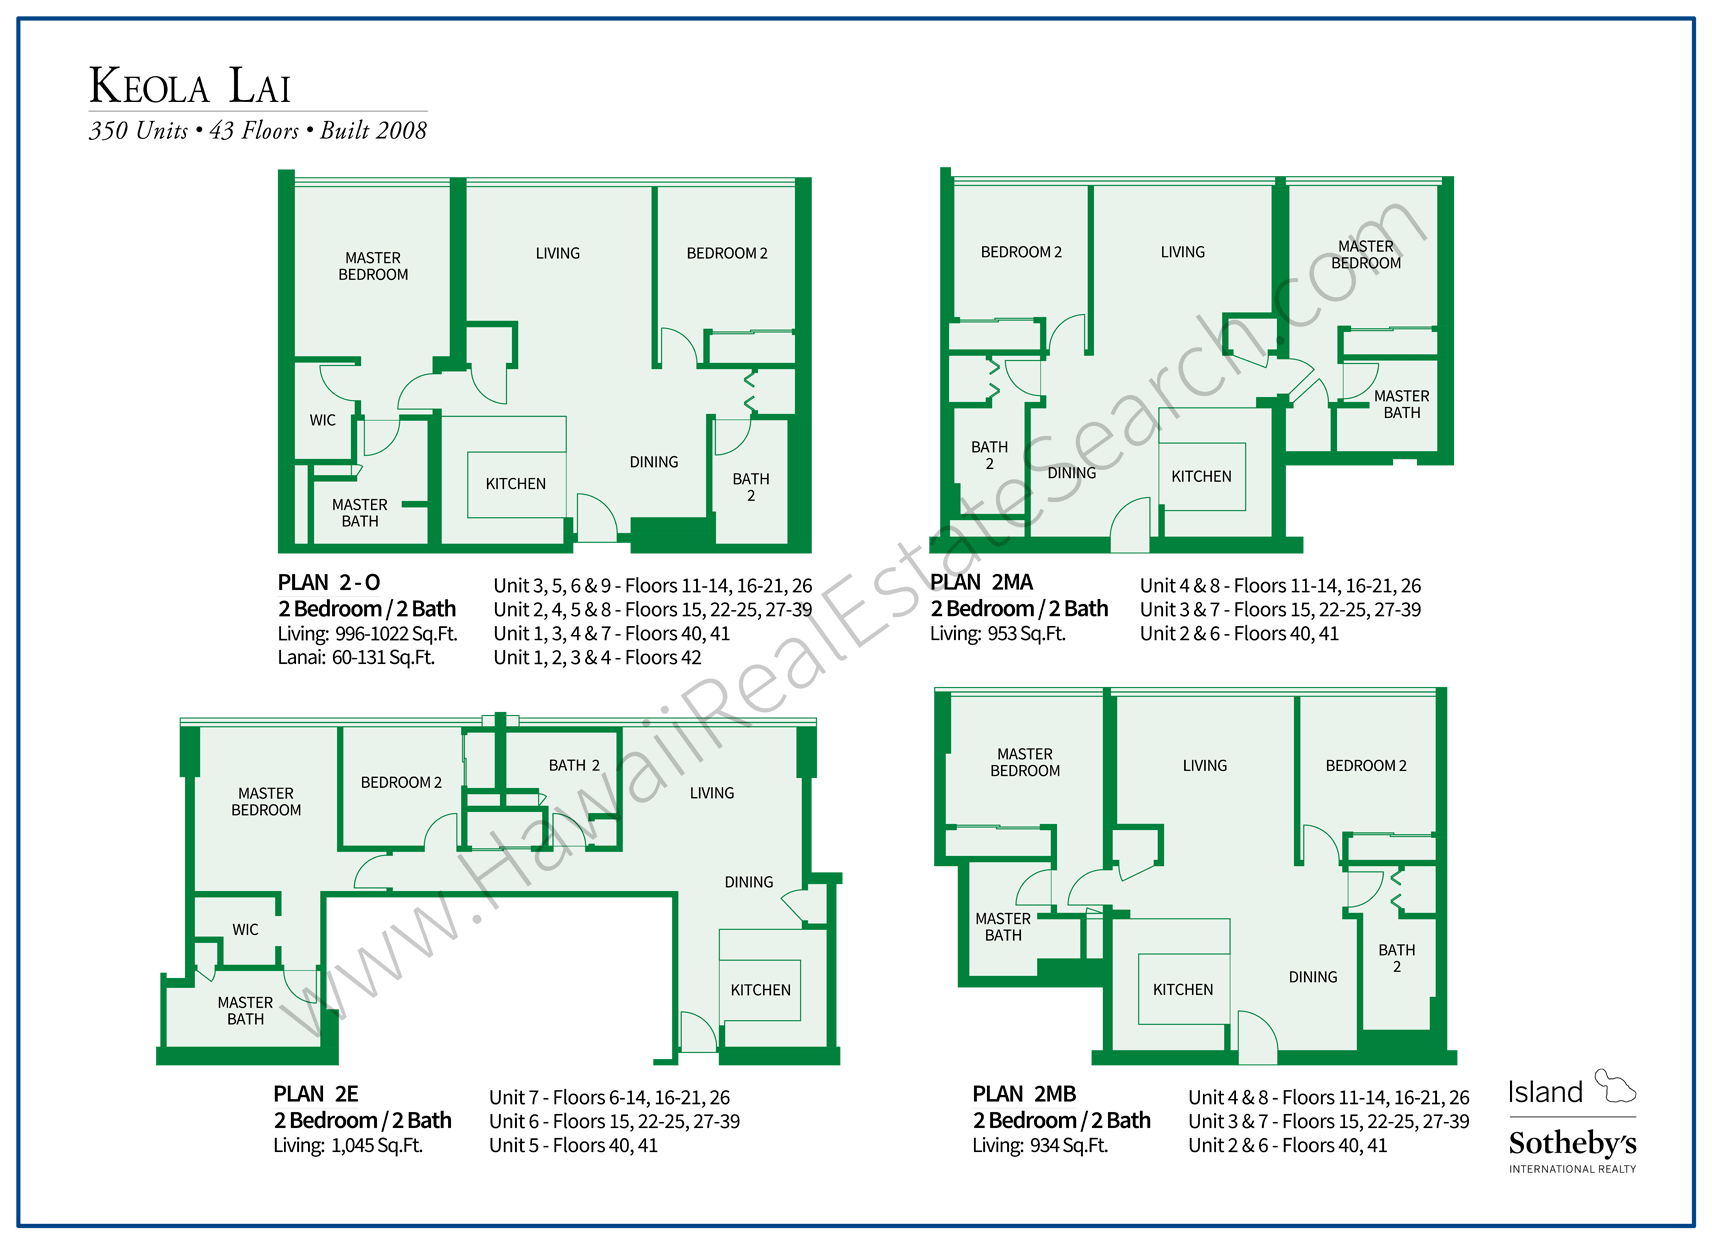 Keola Lai Floor Plans Updated